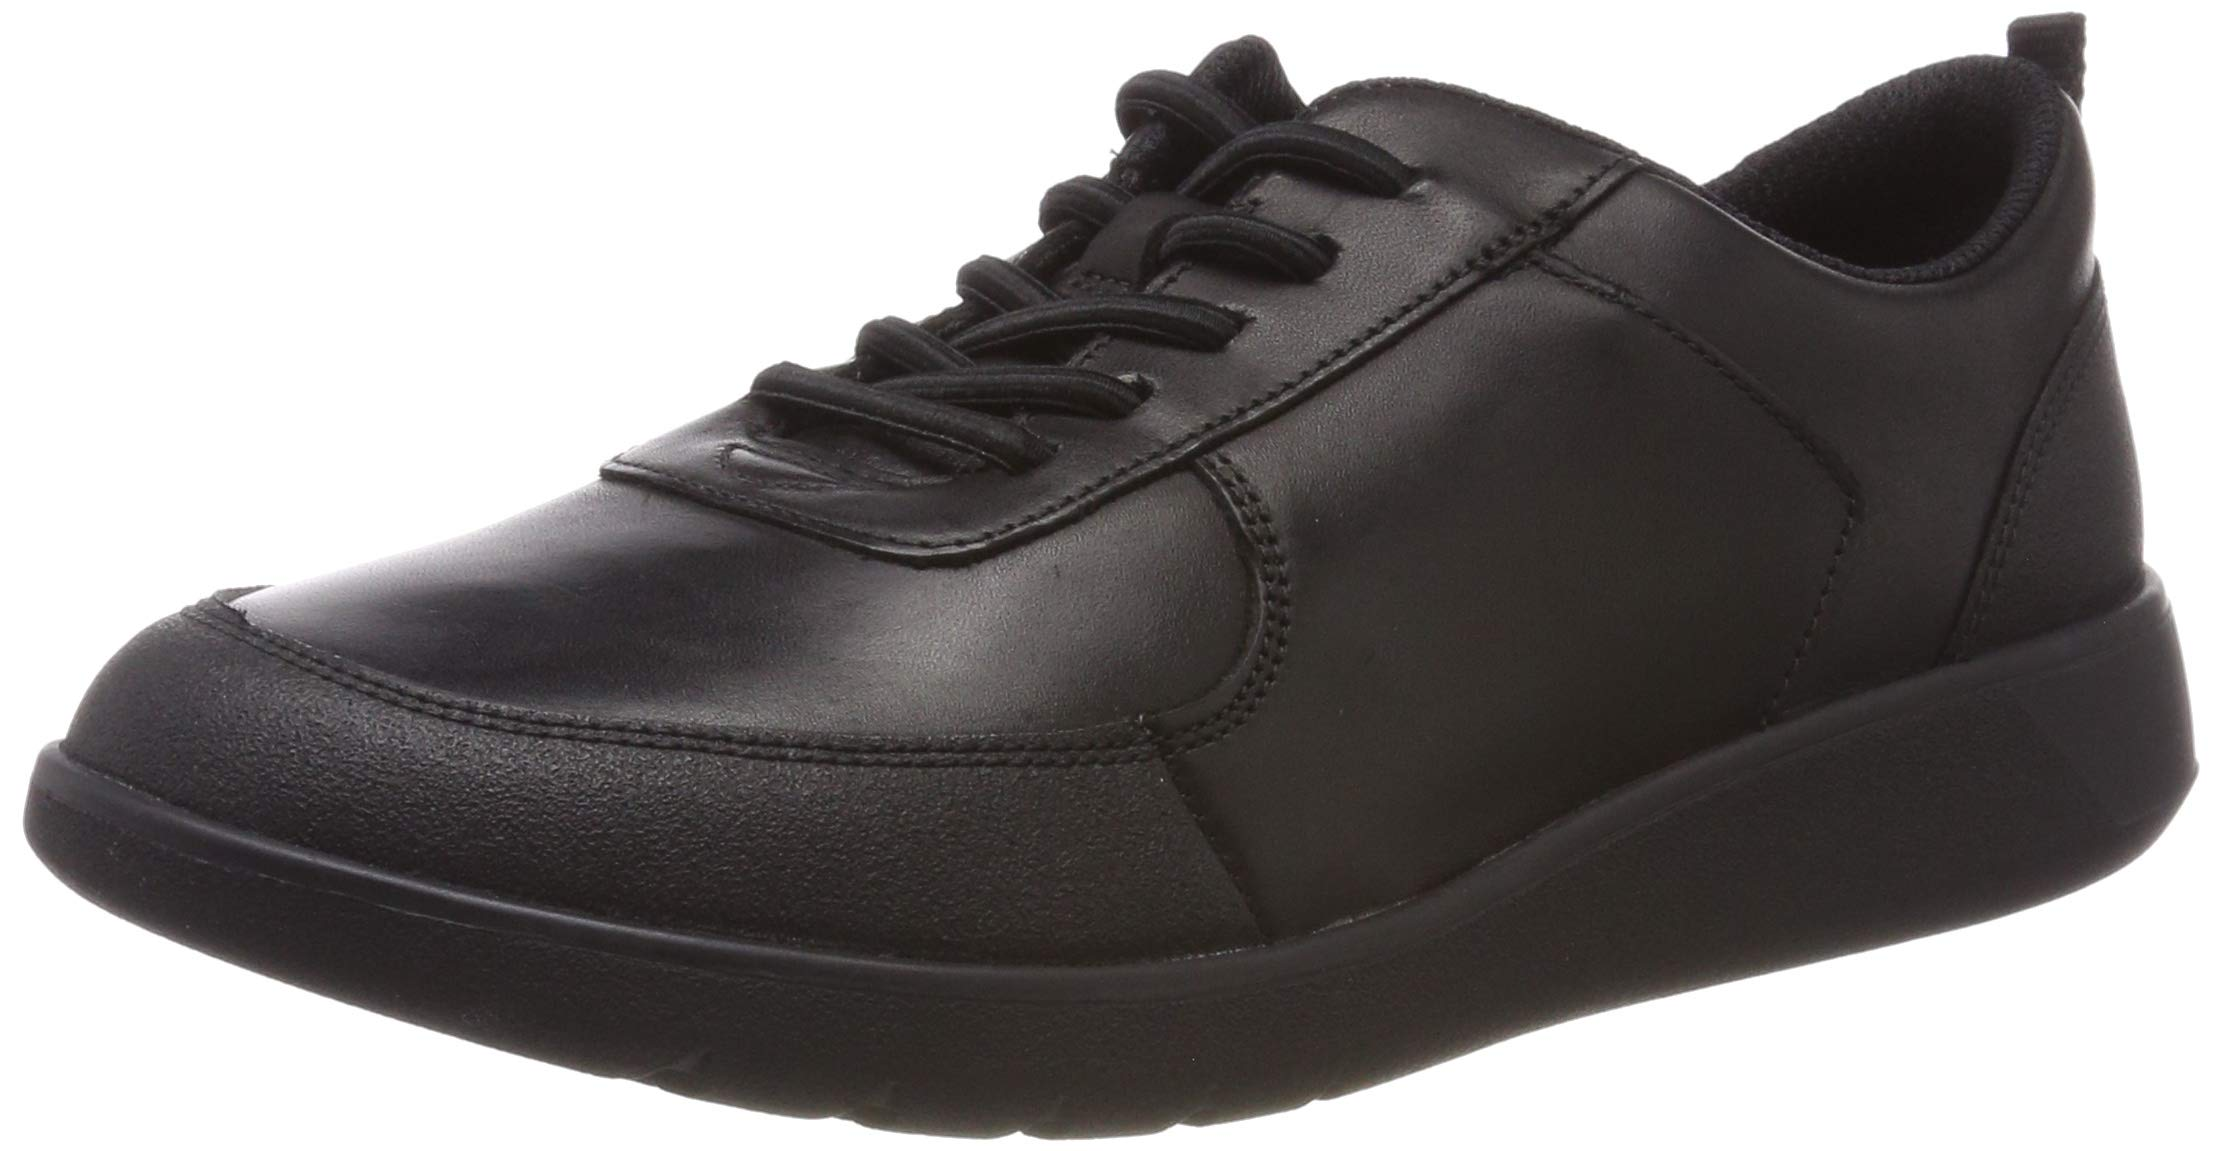 CLARKS Boys' Scape Street Y Brogues, (Black Leather-), 3 UK by CLARKS (Image #1)